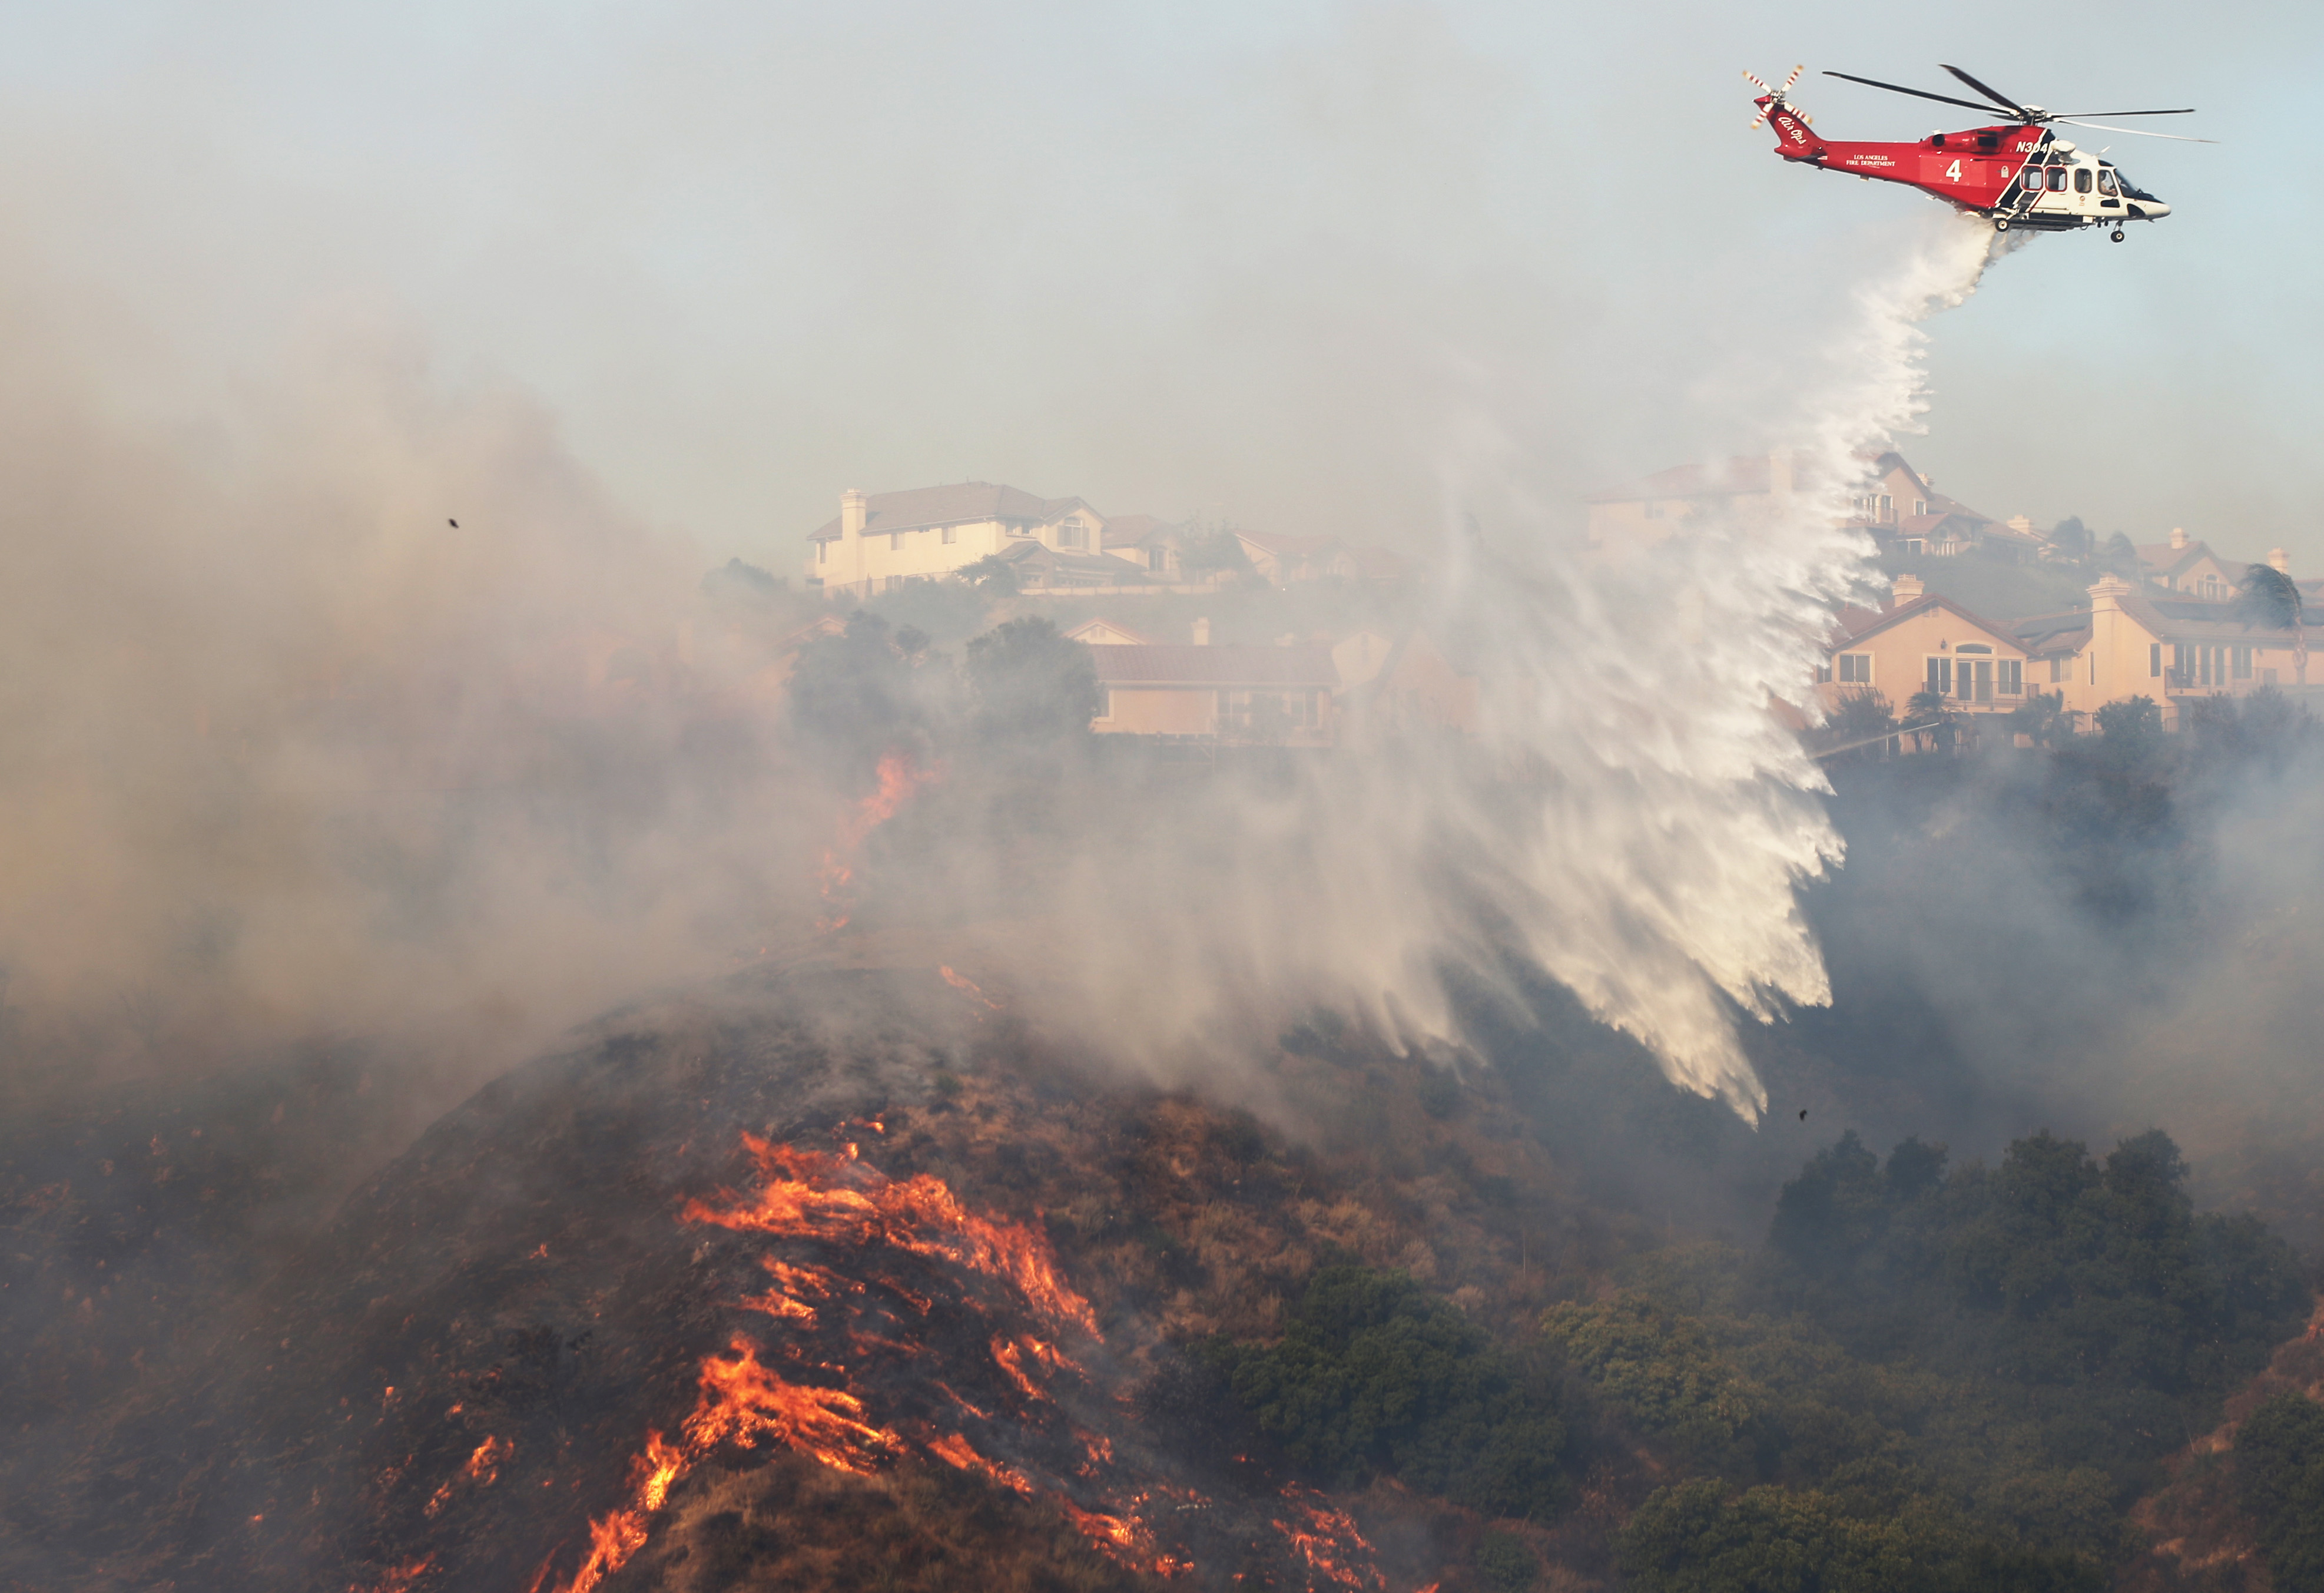 Hot, dry, and windy conditions in California have sparked big fires